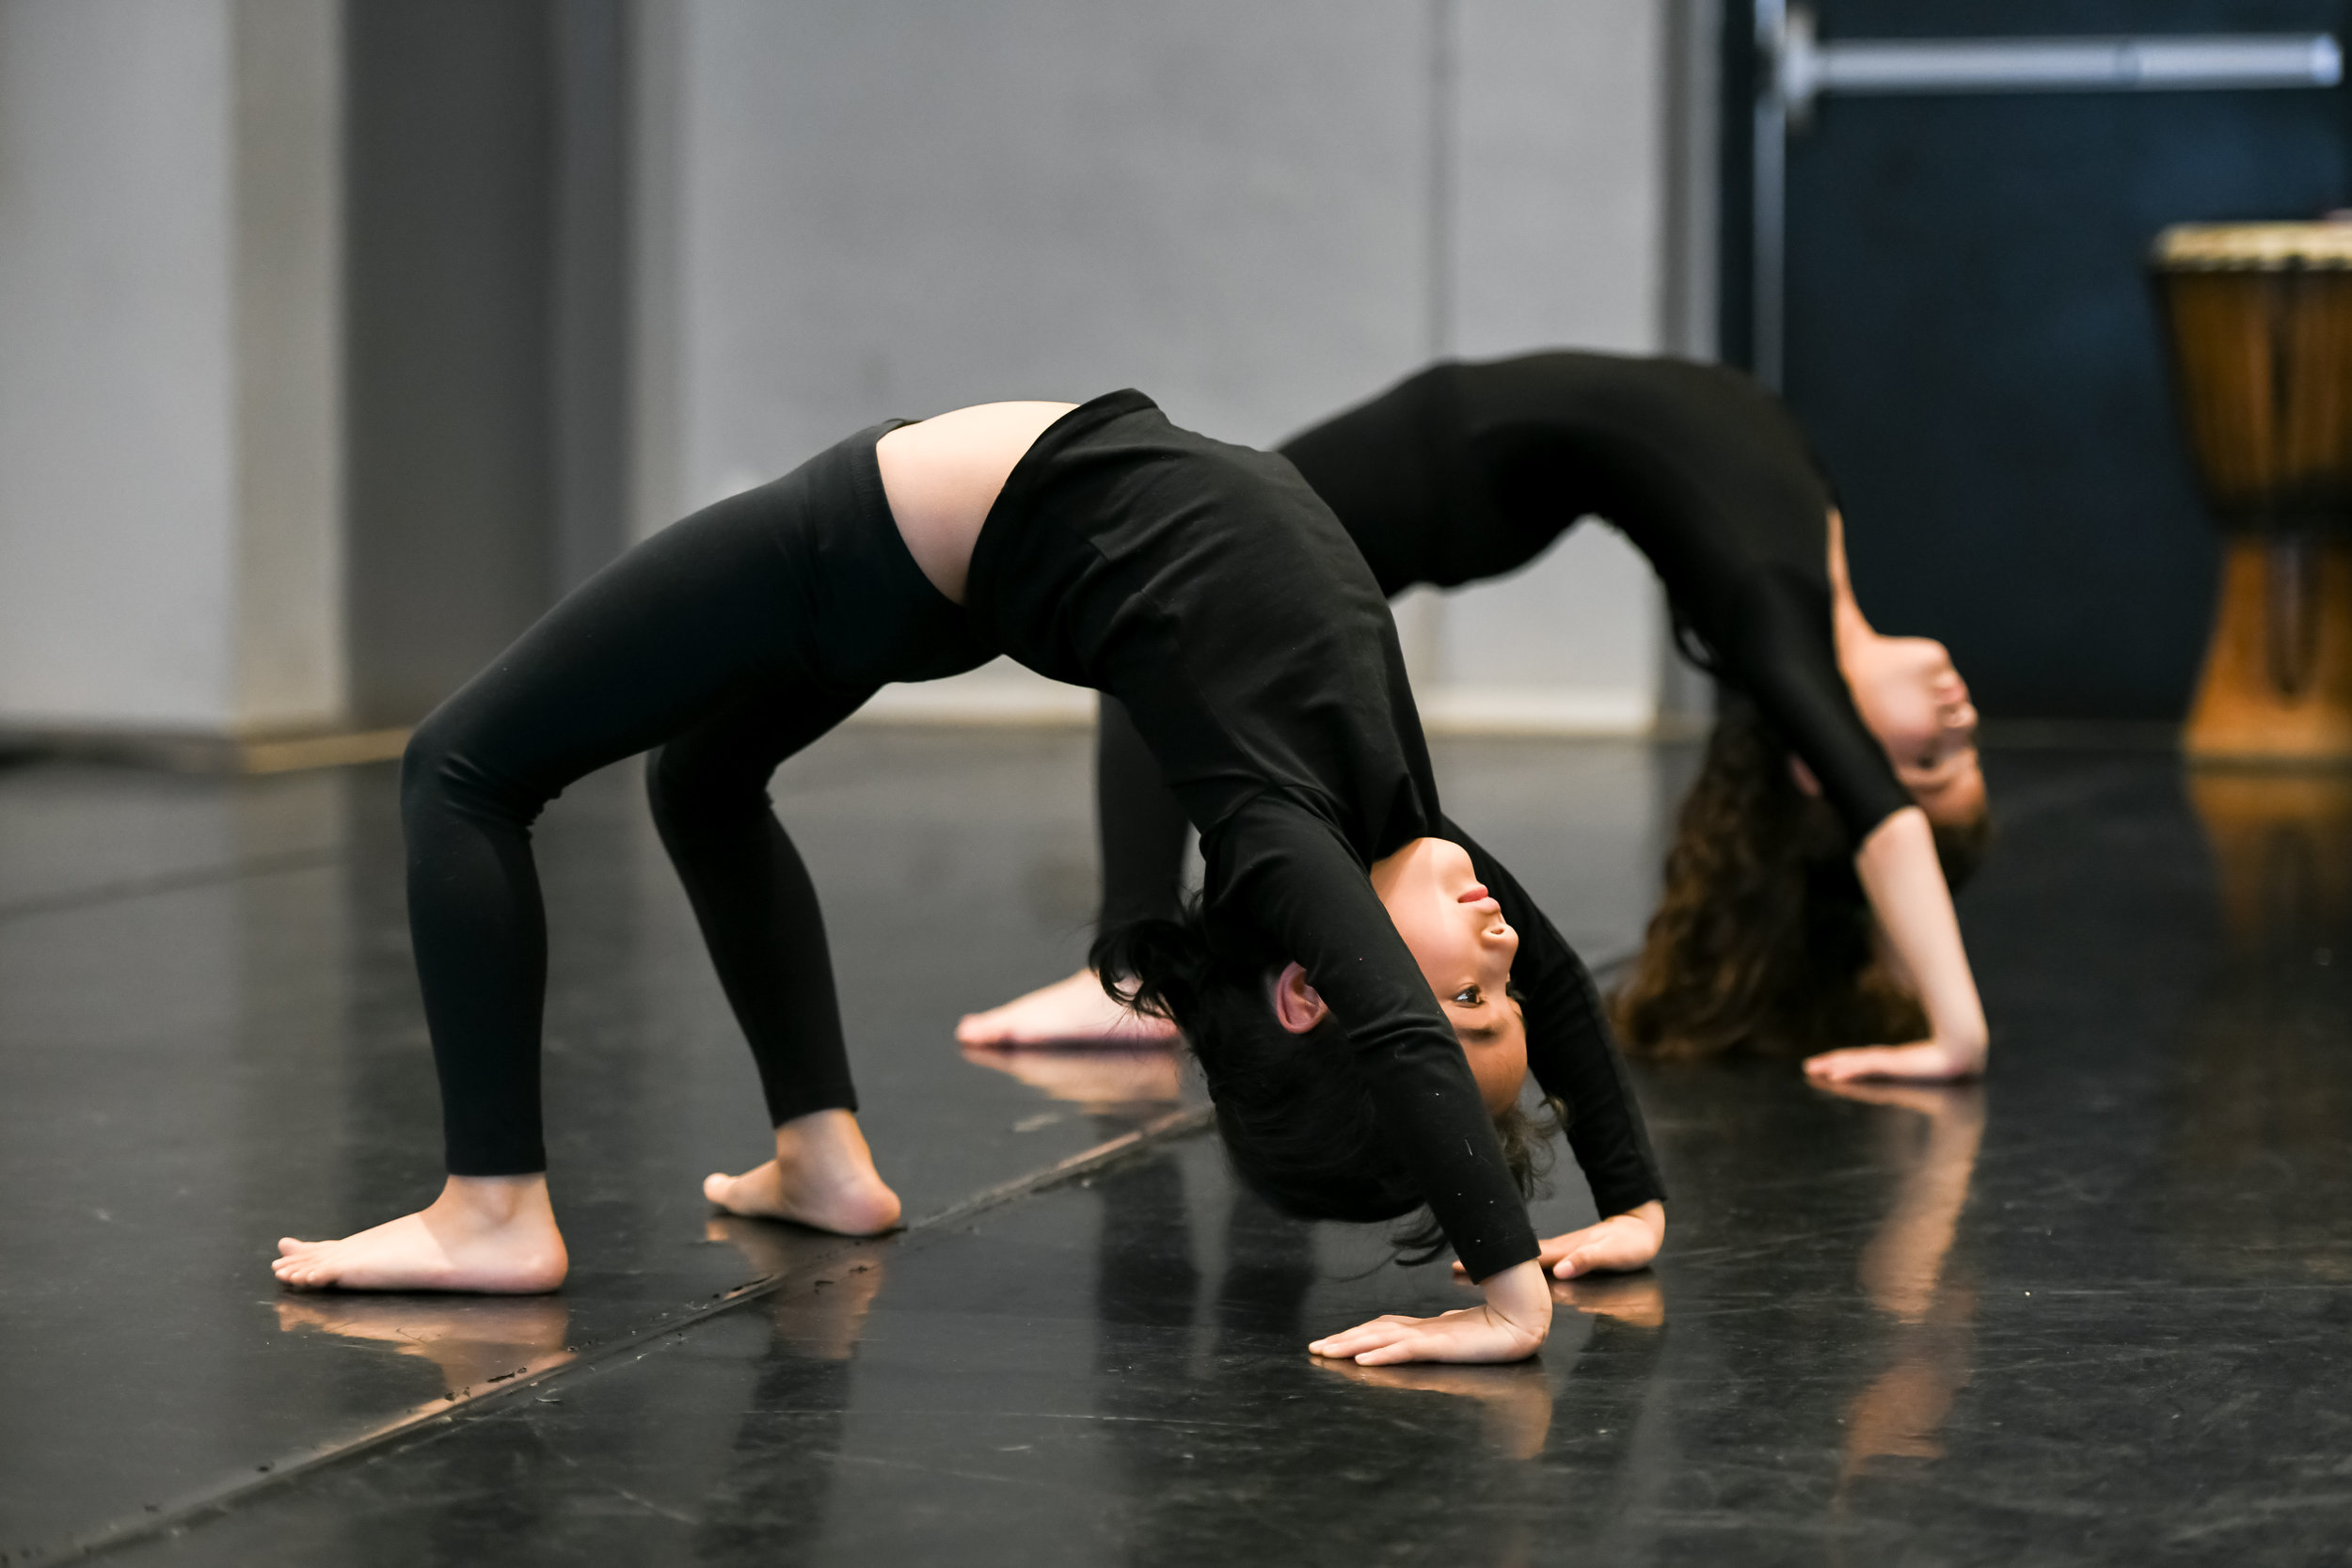 ACRO - Acro dance is a style of dance that combines classical technique with acrobatics. Students develop a strong foundation which increases their flexibility and strength while working on musicality and acrobatics such as tumbling, cartwheels, bridges and more